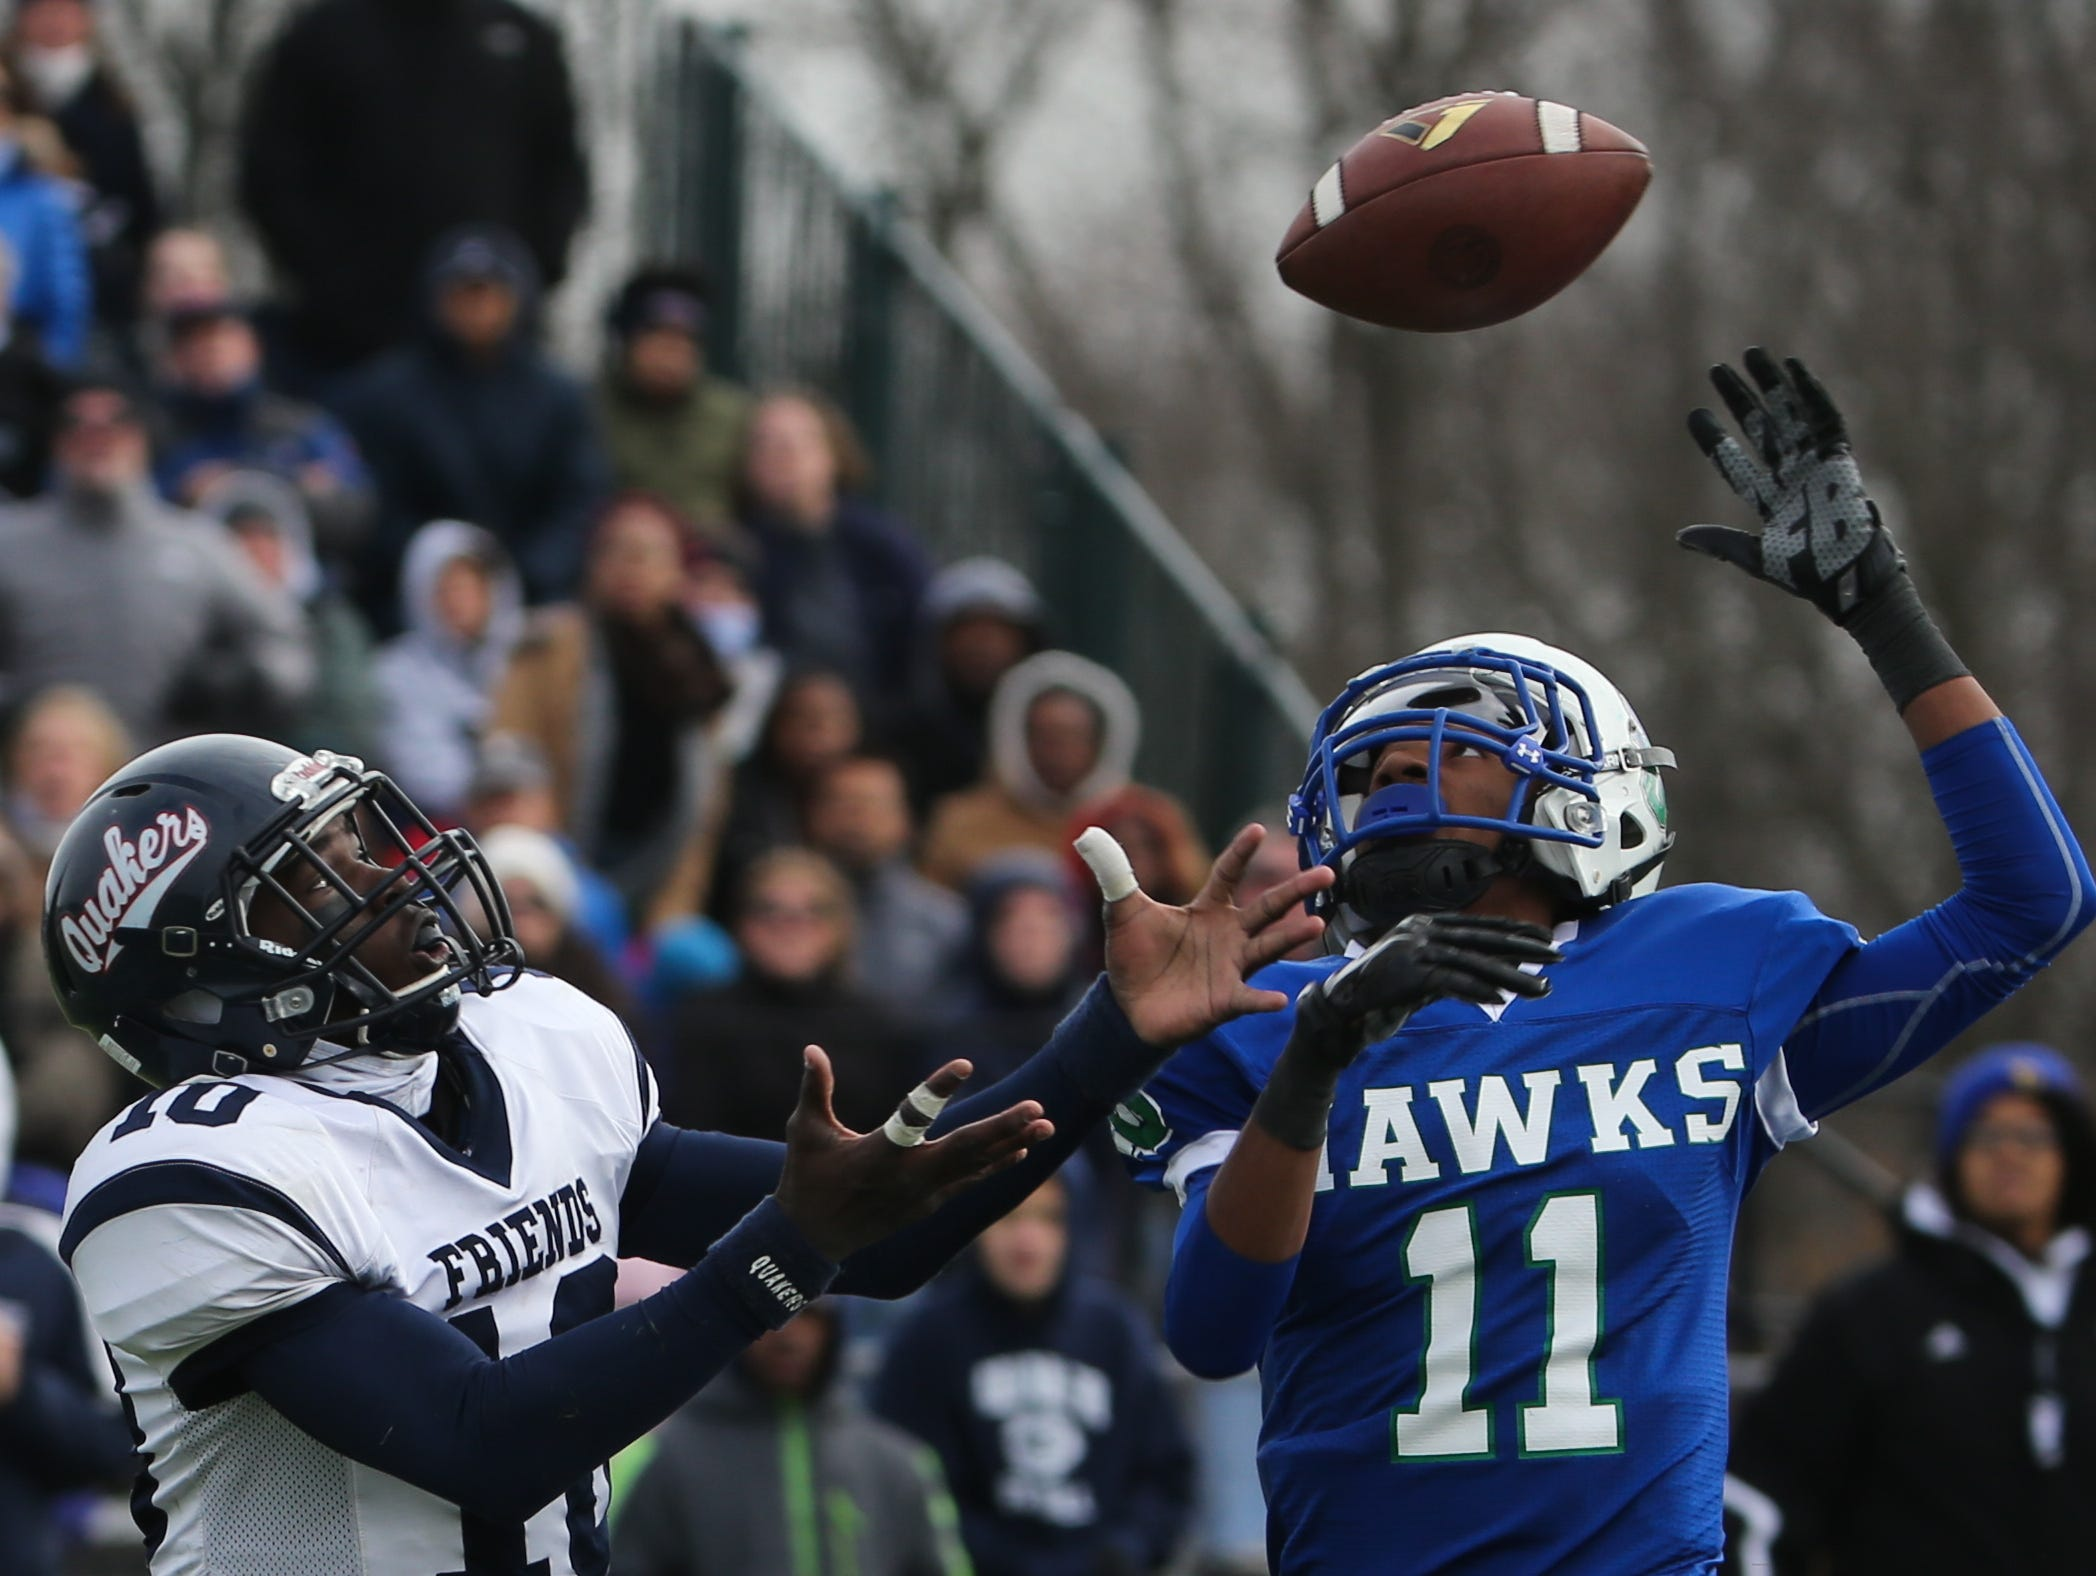 Friends halfback Quinten McAbee and St. Georges defensive back Robert Shorts make a play on a Justin Beneck pass in the third quarter. Wilmington Friends advances to the DIAA Division II state finals with a 20-6 win over St. Georges Saturday.